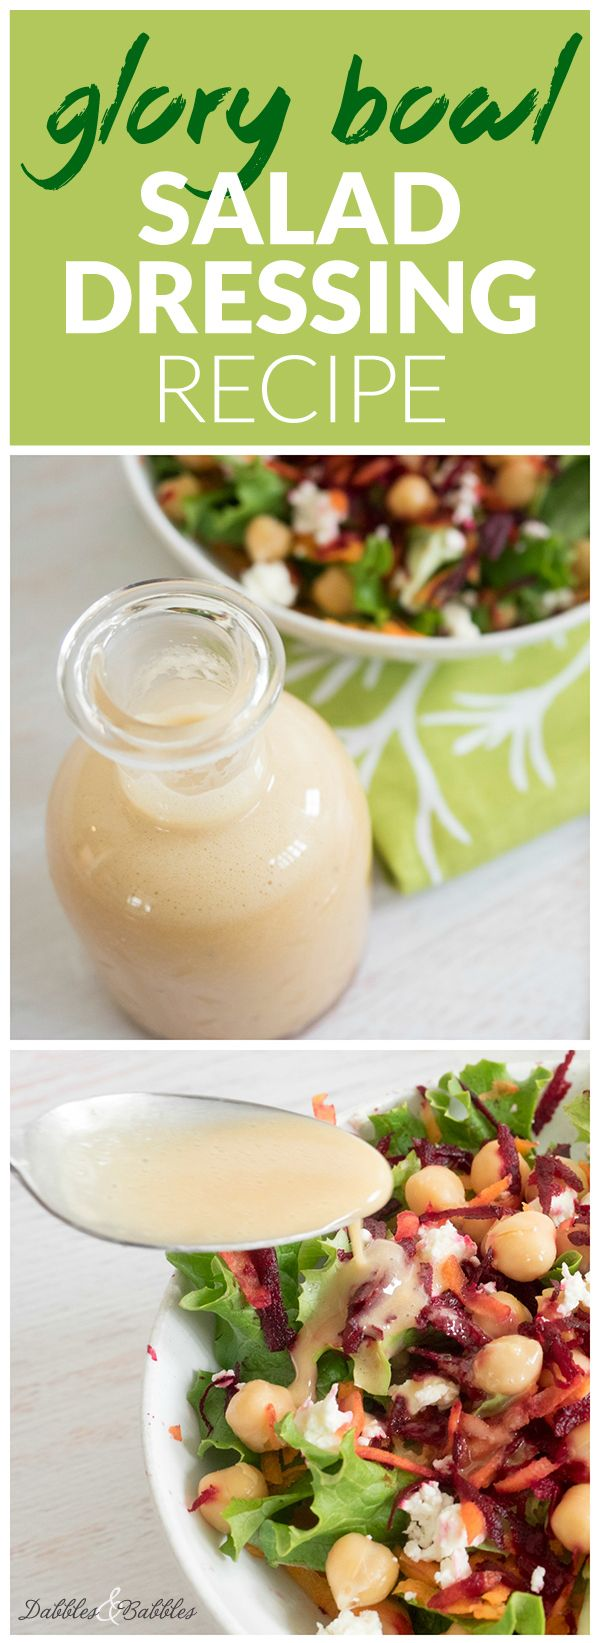 Glory Bowl Salad Dressing Recipe - my new favorite salad dressing recipe from the Whitewater Cooks series! This amazing dressing is absolutely delicious and so versatile it can also be used on chicken, rice, noodles and more. Click to go to recipe.